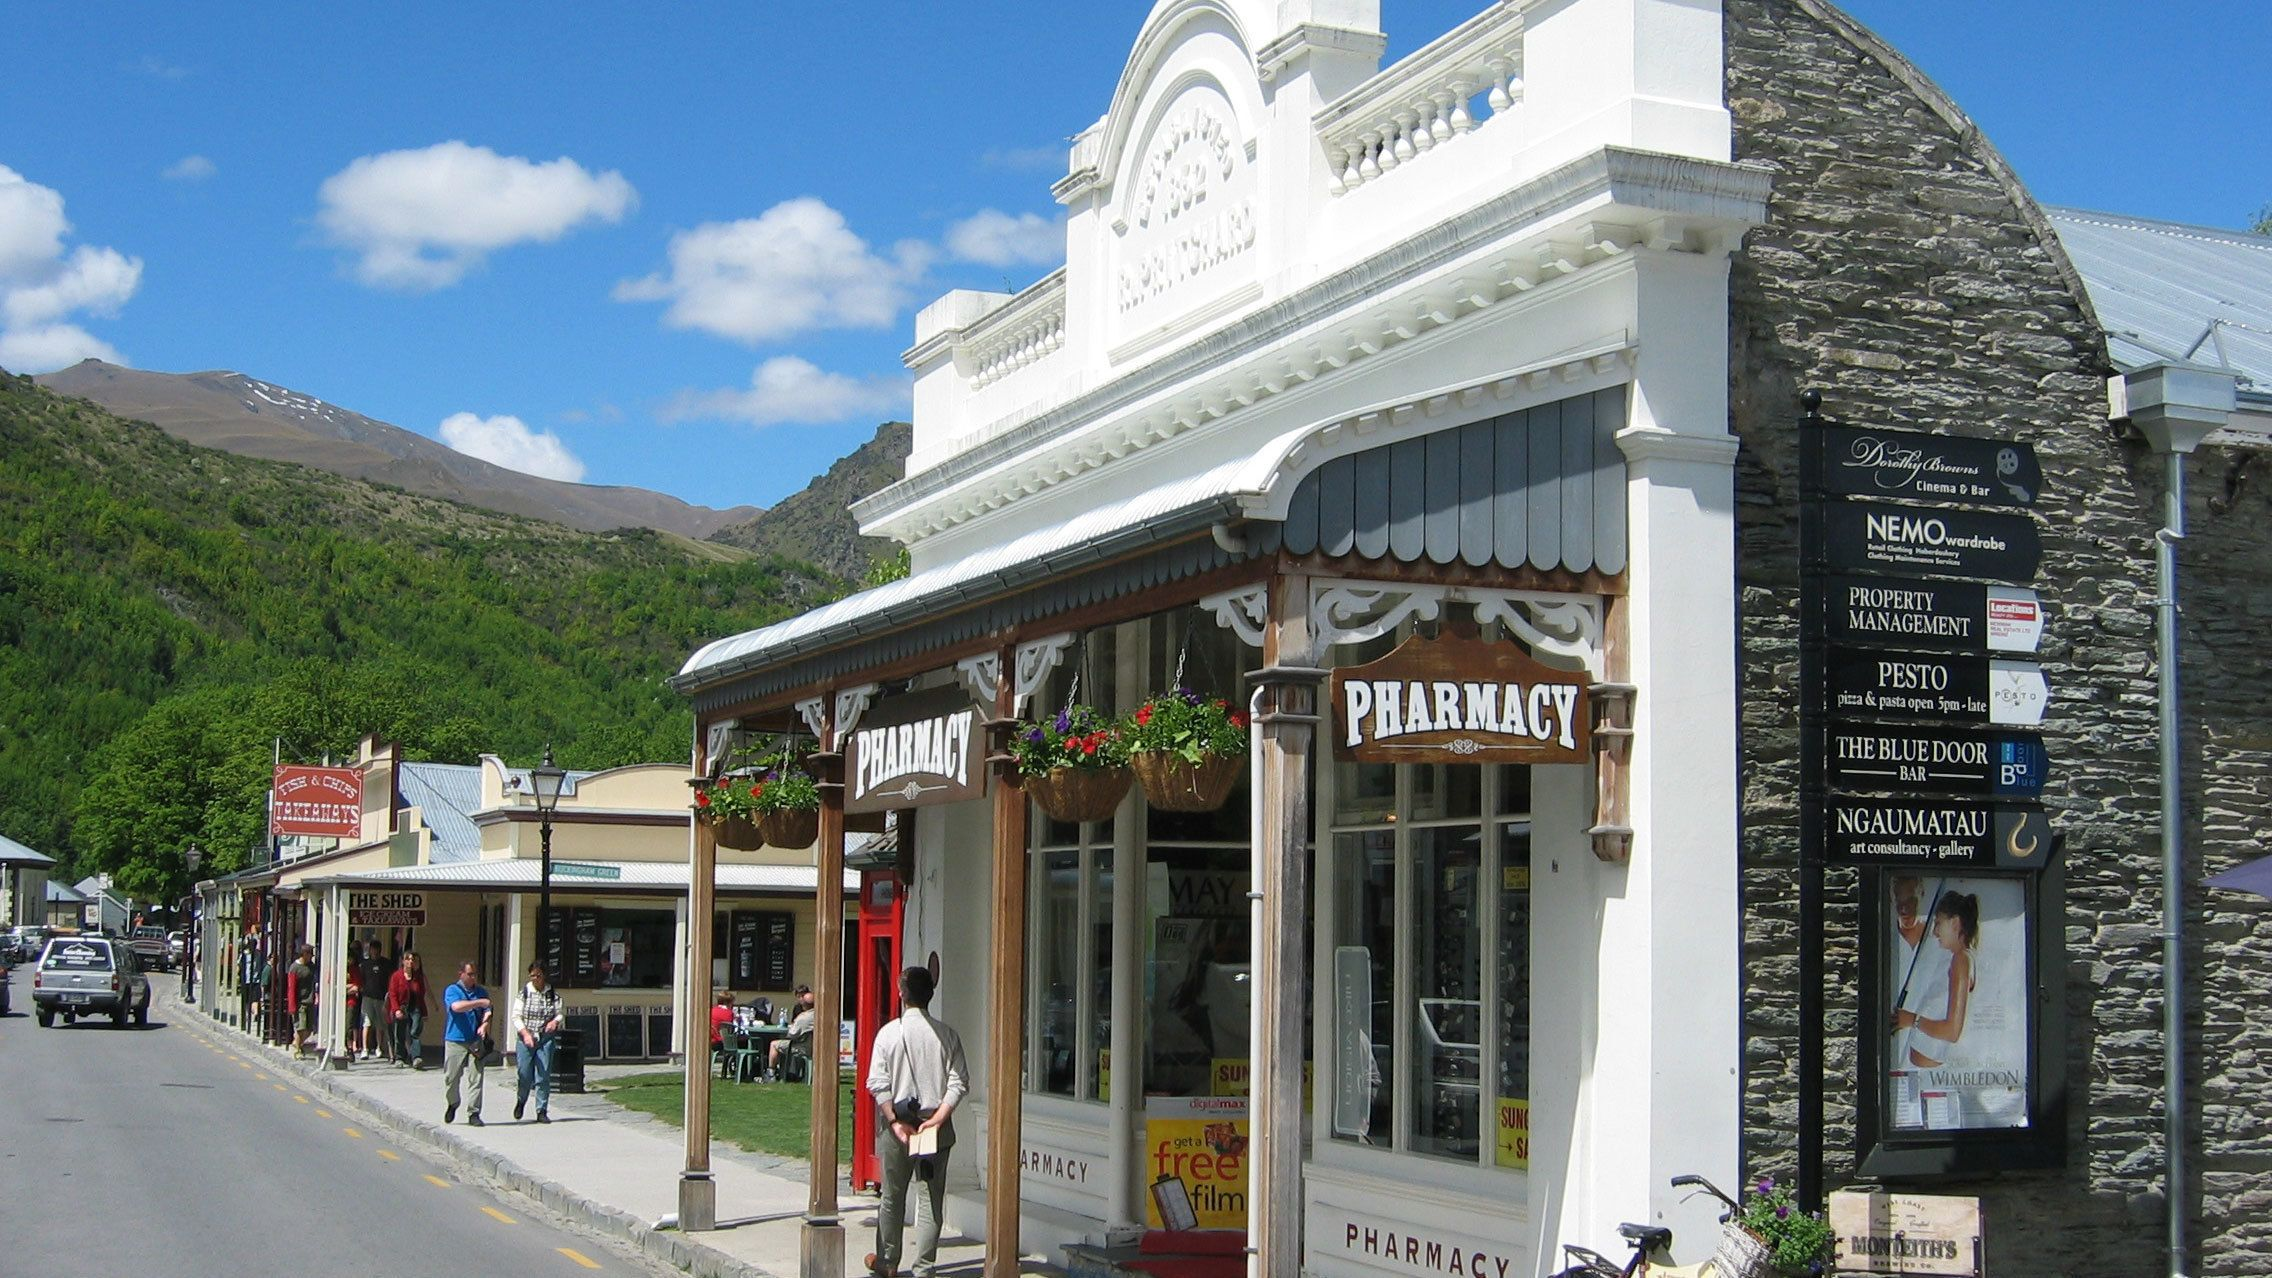 small retail stores along the street in New Zealand